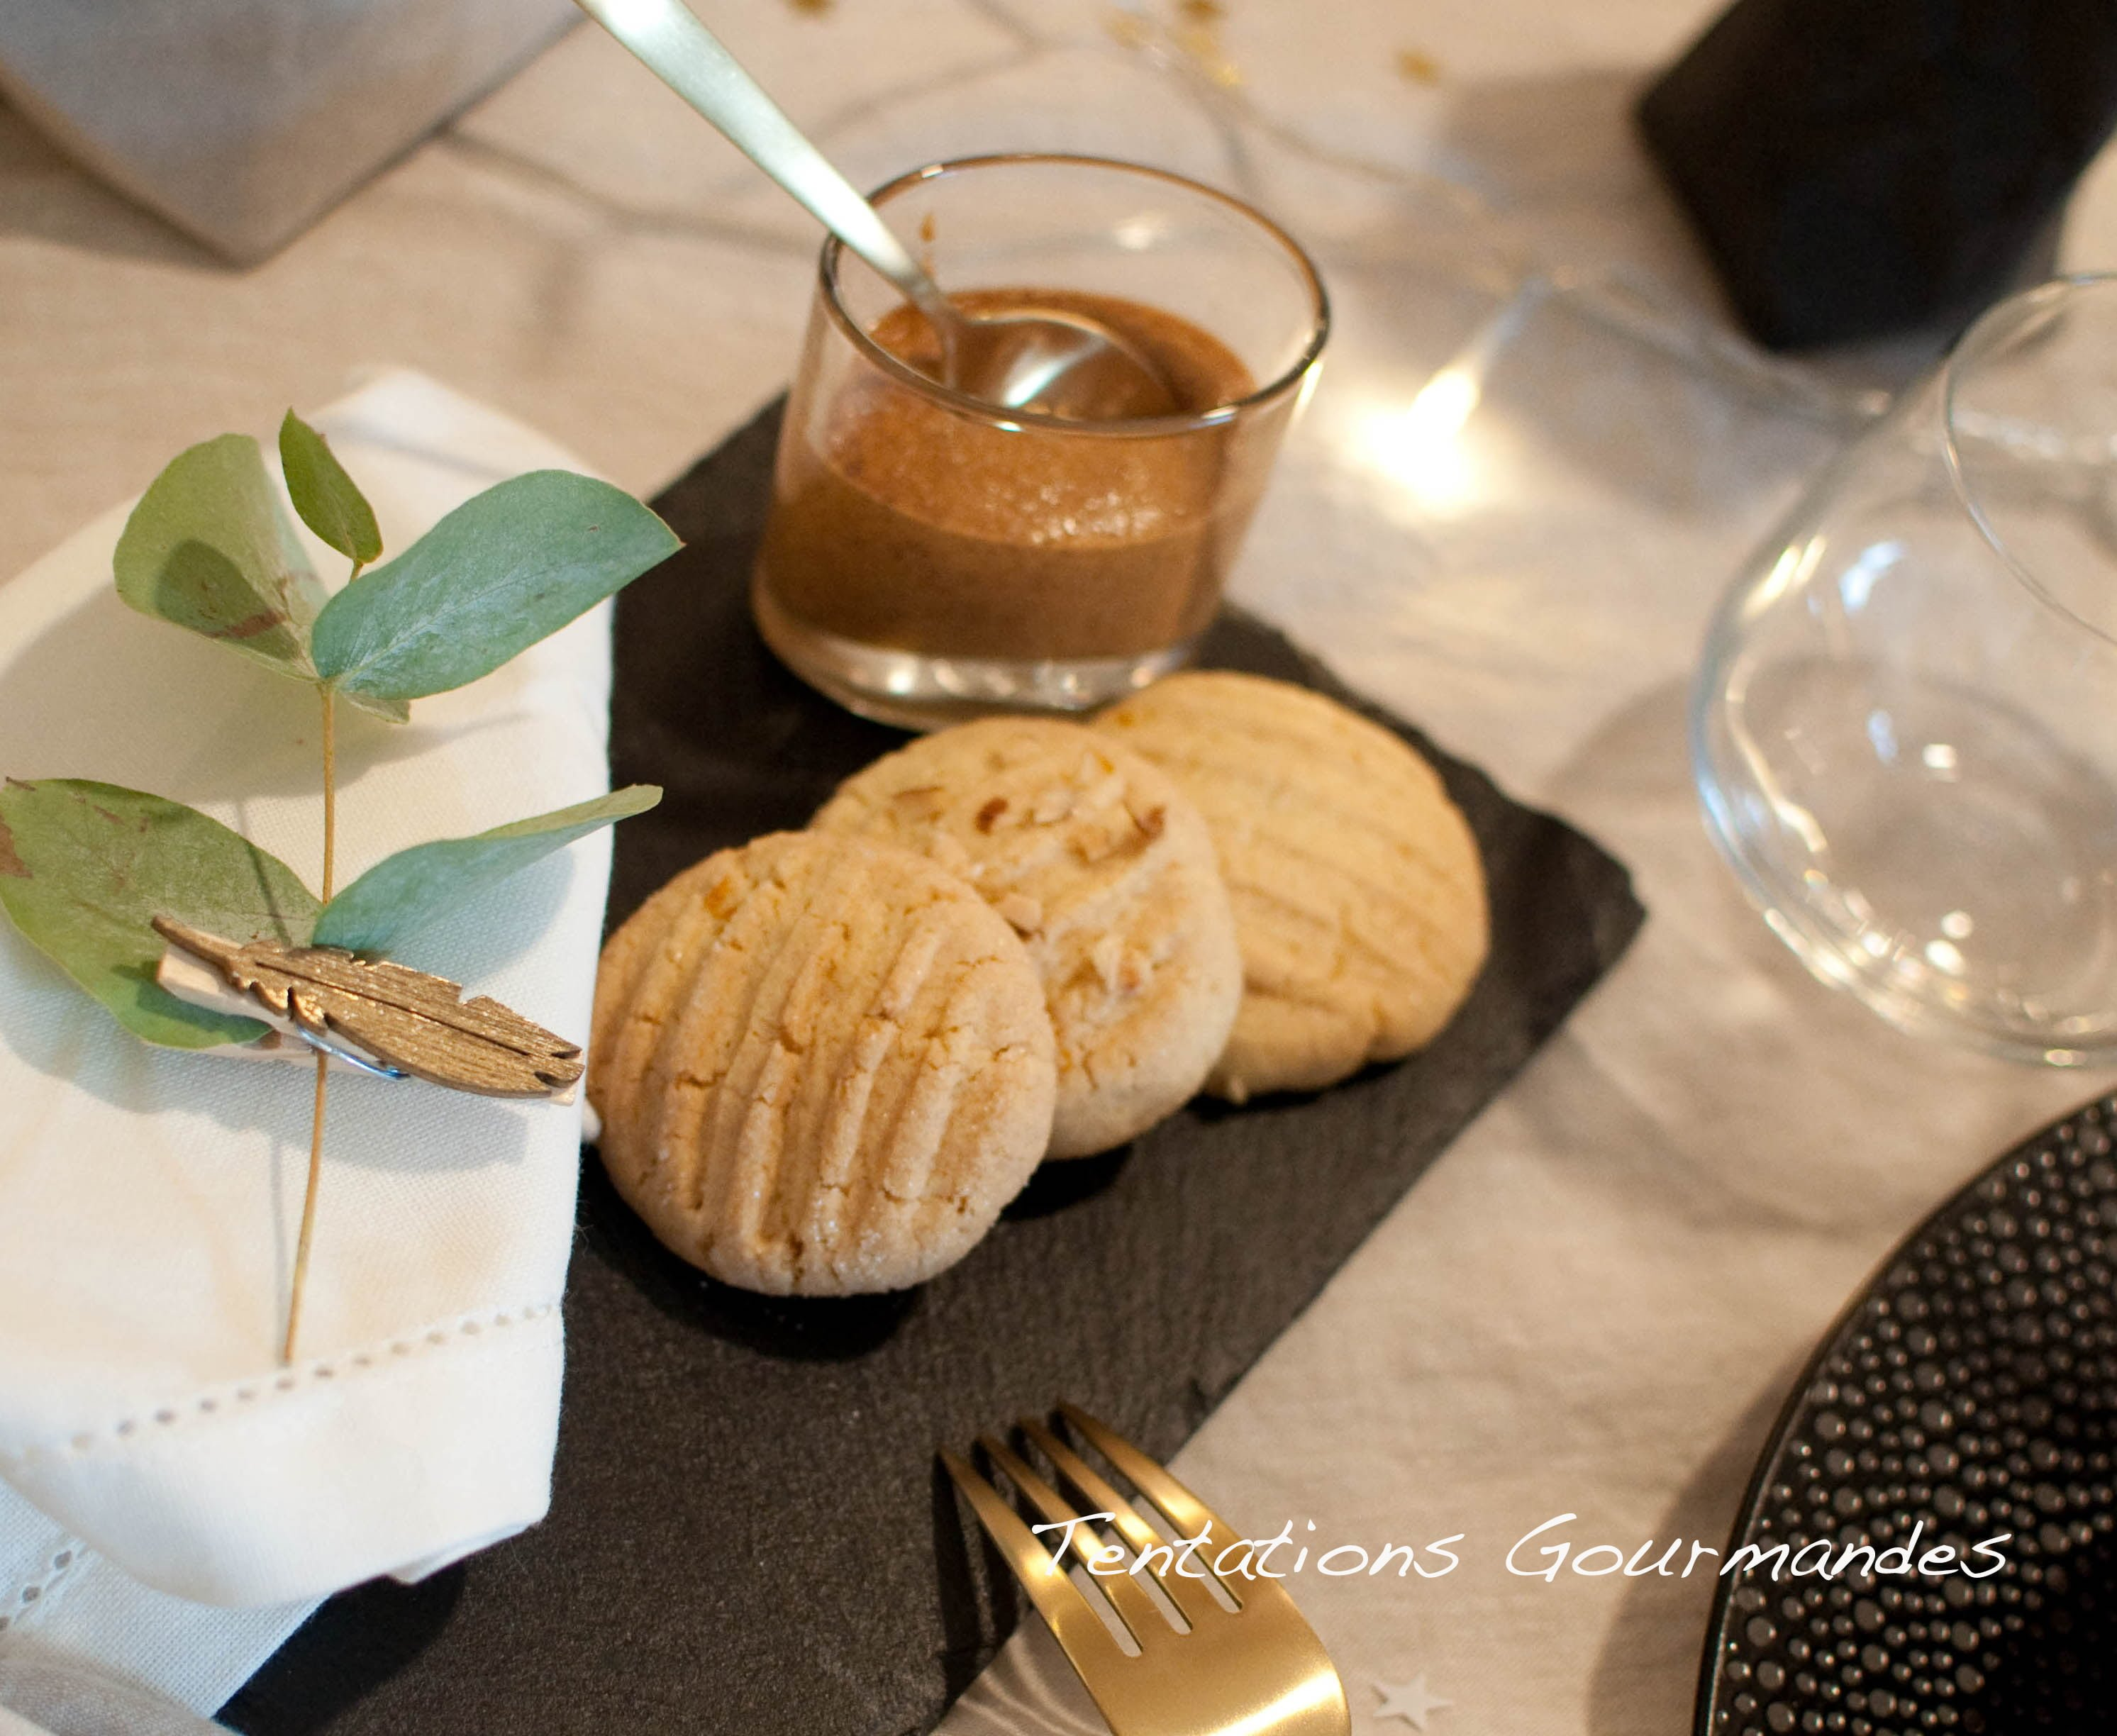 Biscuits au beurre r alis s au thermomix - Beurre persille thermomix ...